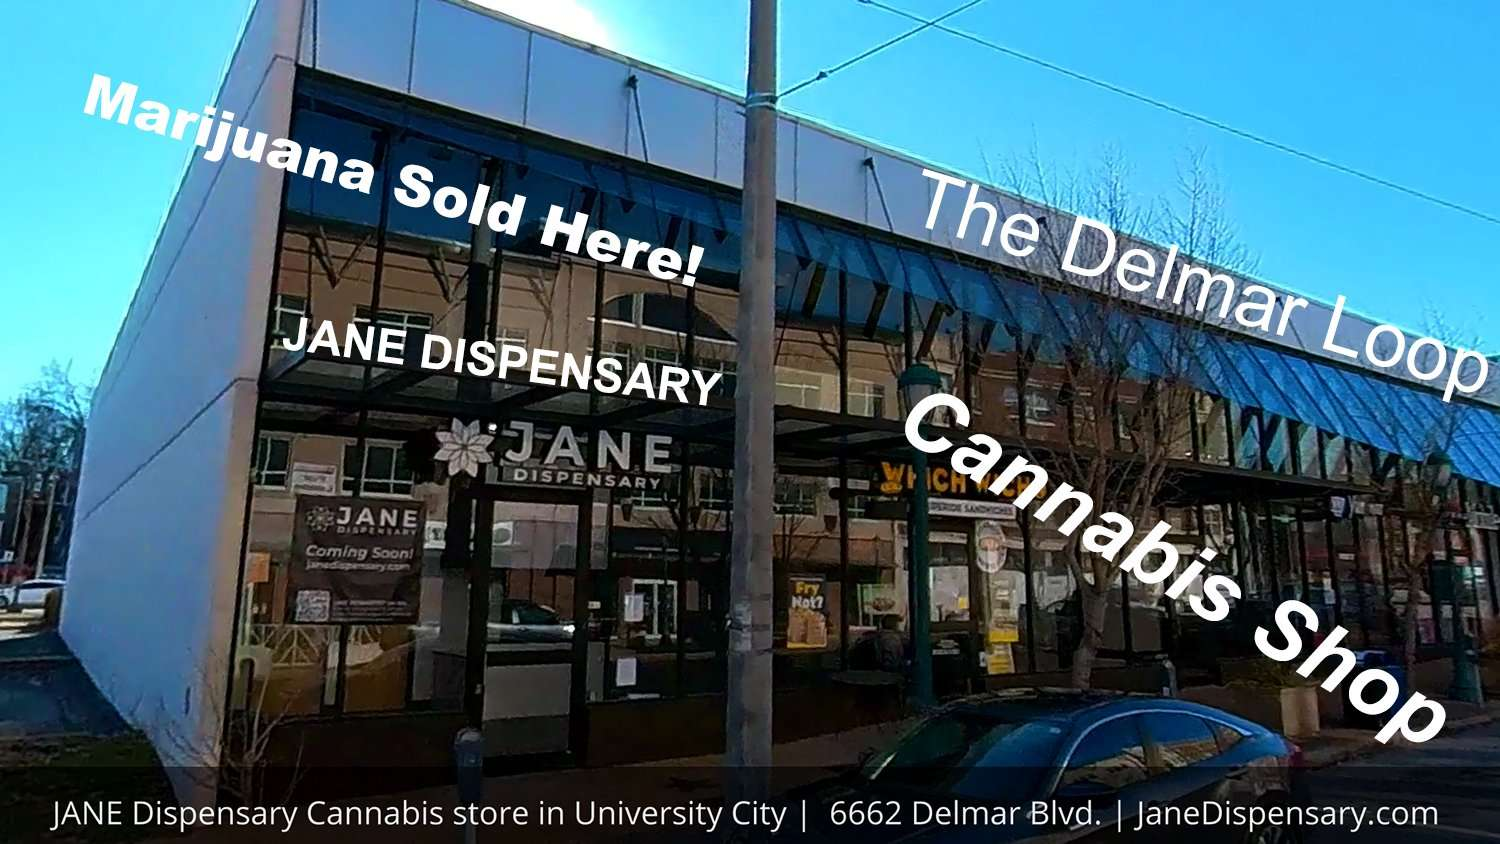 Cannabis, Marijuana shop called Jane Dispensary will soon open on Delmar Blvd, St. Louis, credit craig currie